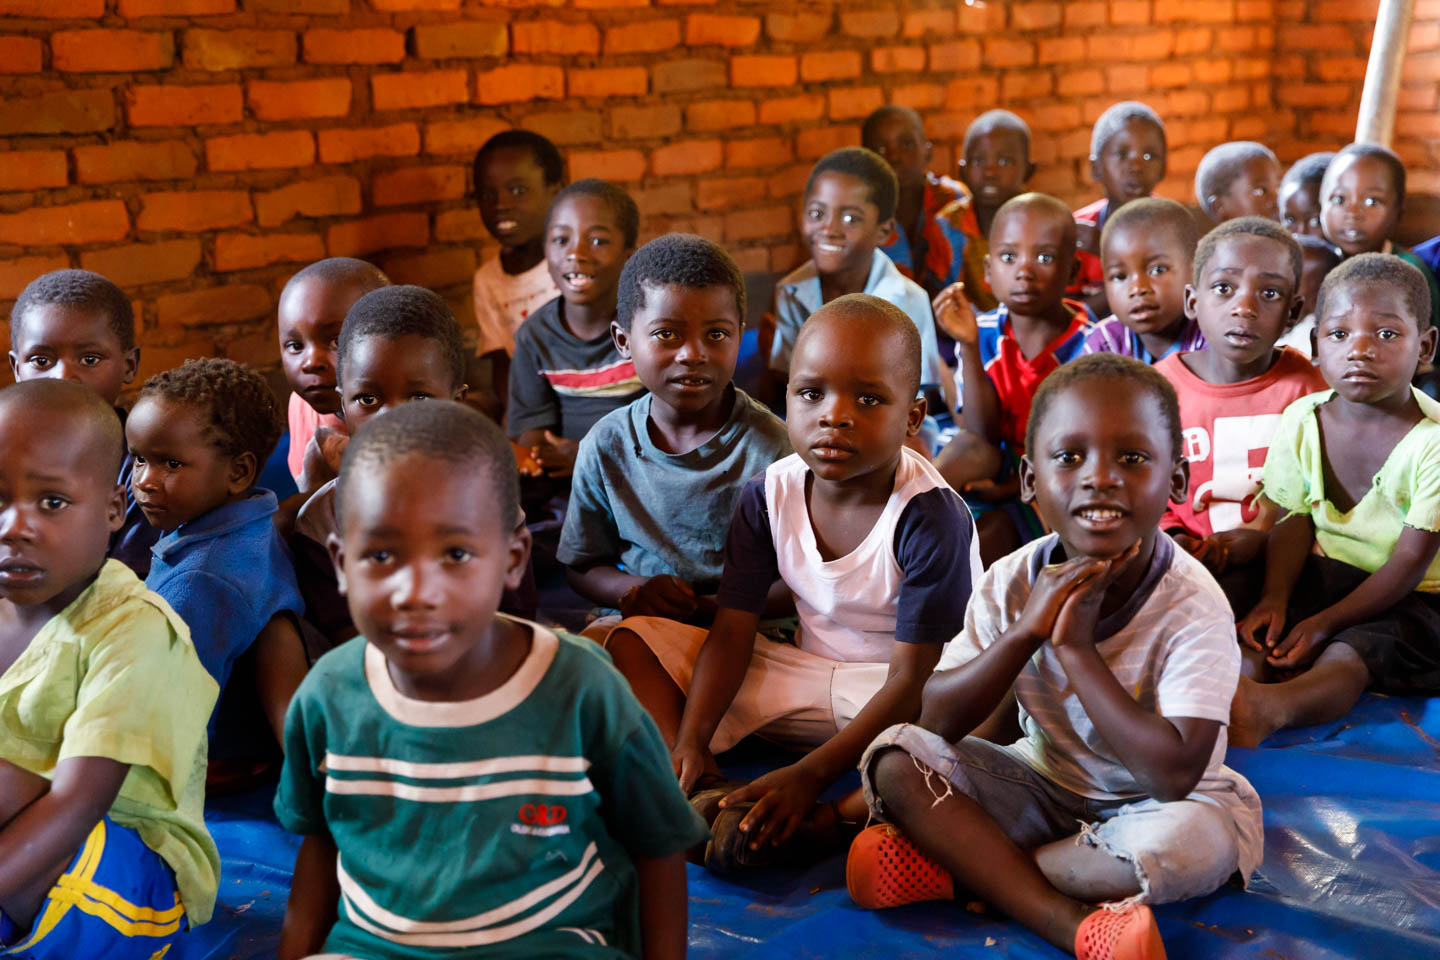 A classroom of children from the Malawian village